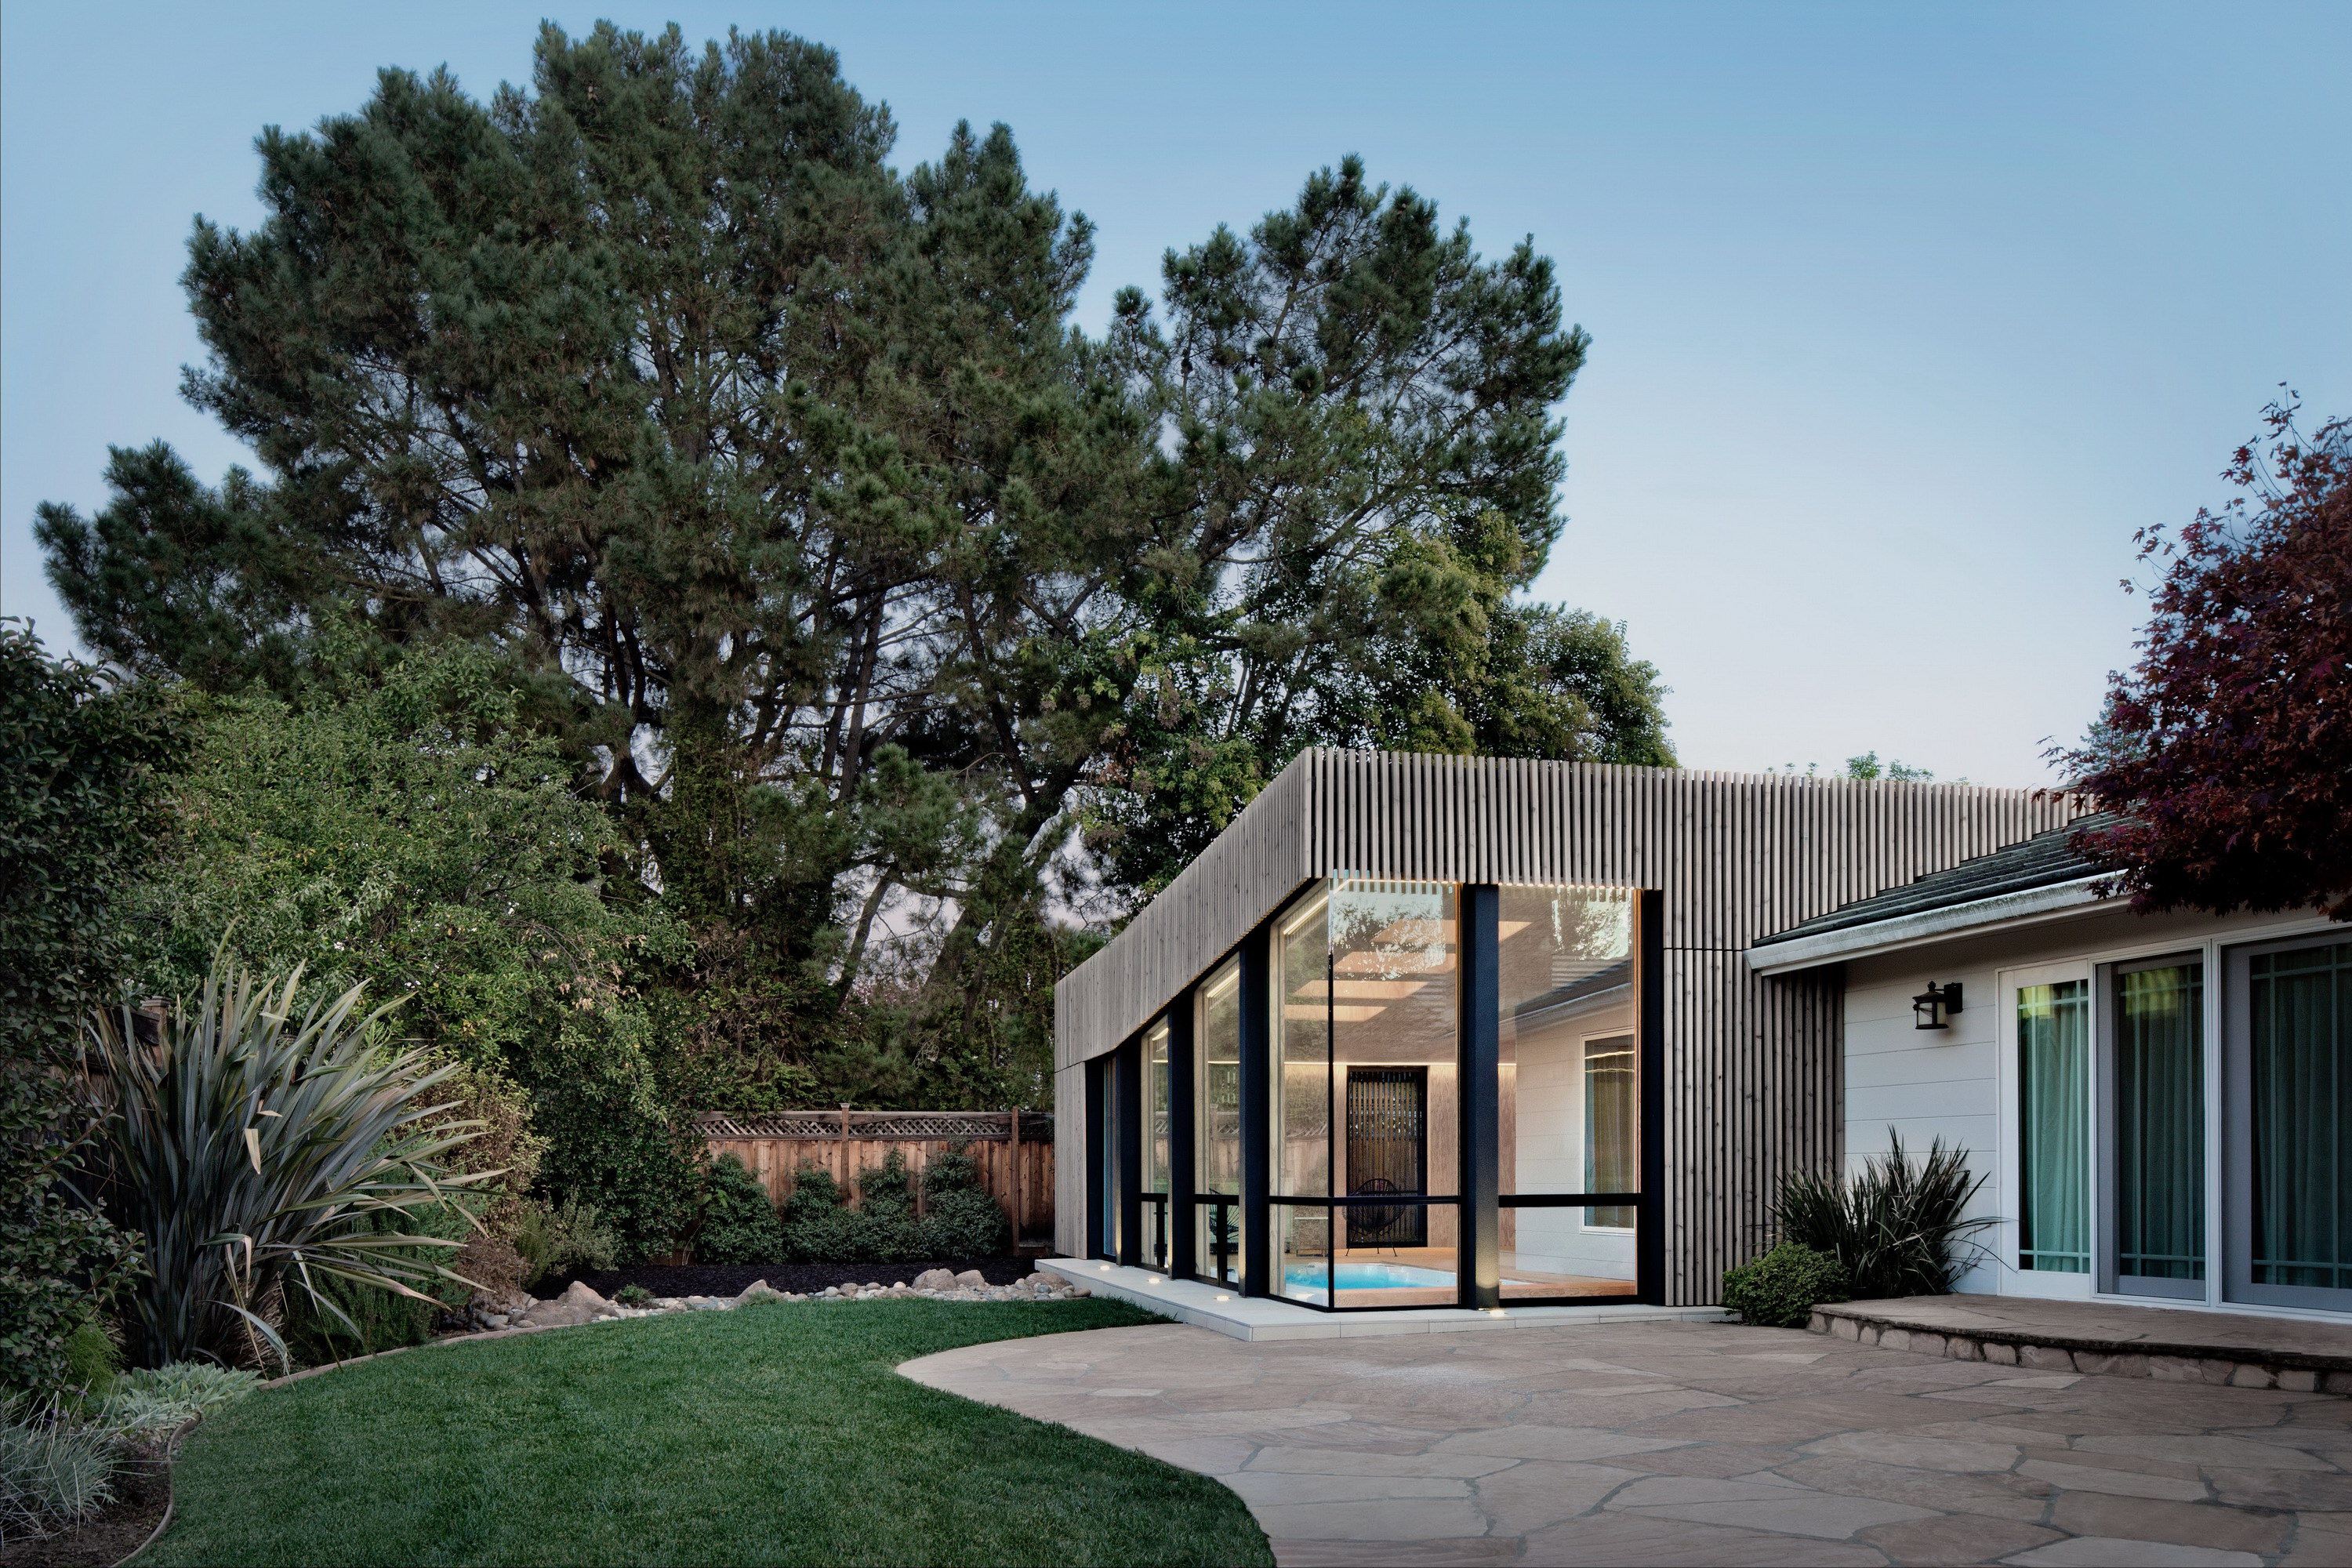 Silicon Valley Poolhouse | Modern Extension to Traditional Home